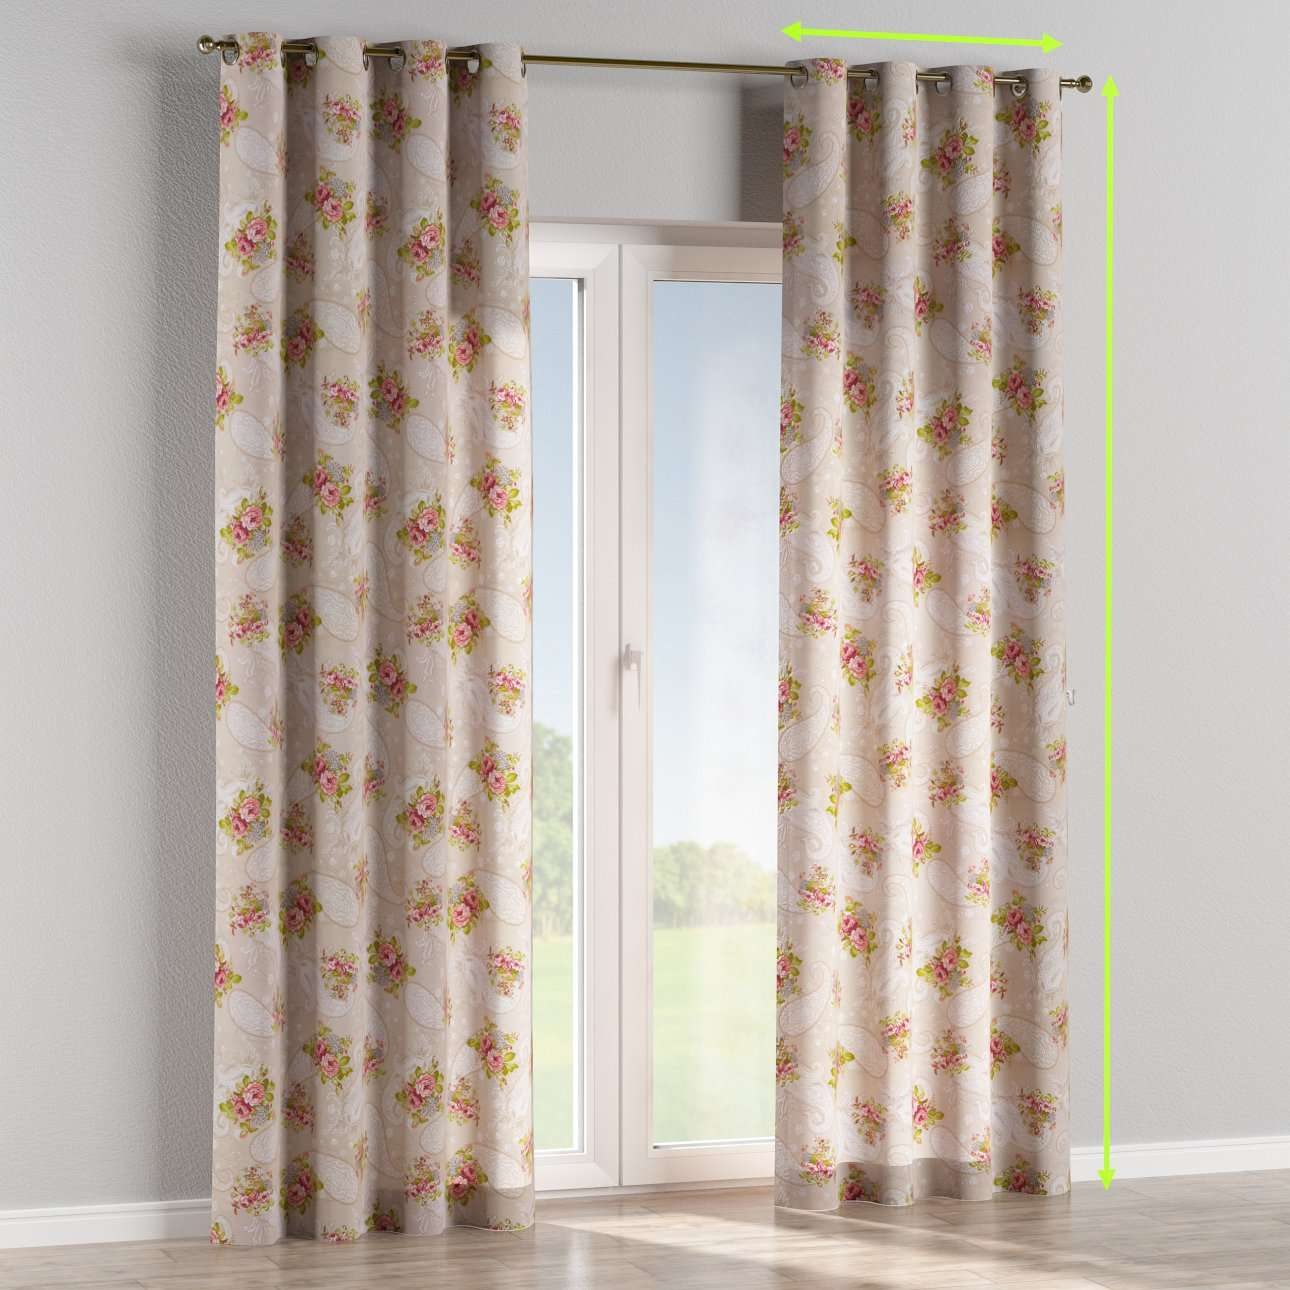 Eyelet curtains in collection Flowers, fabric: 311-15